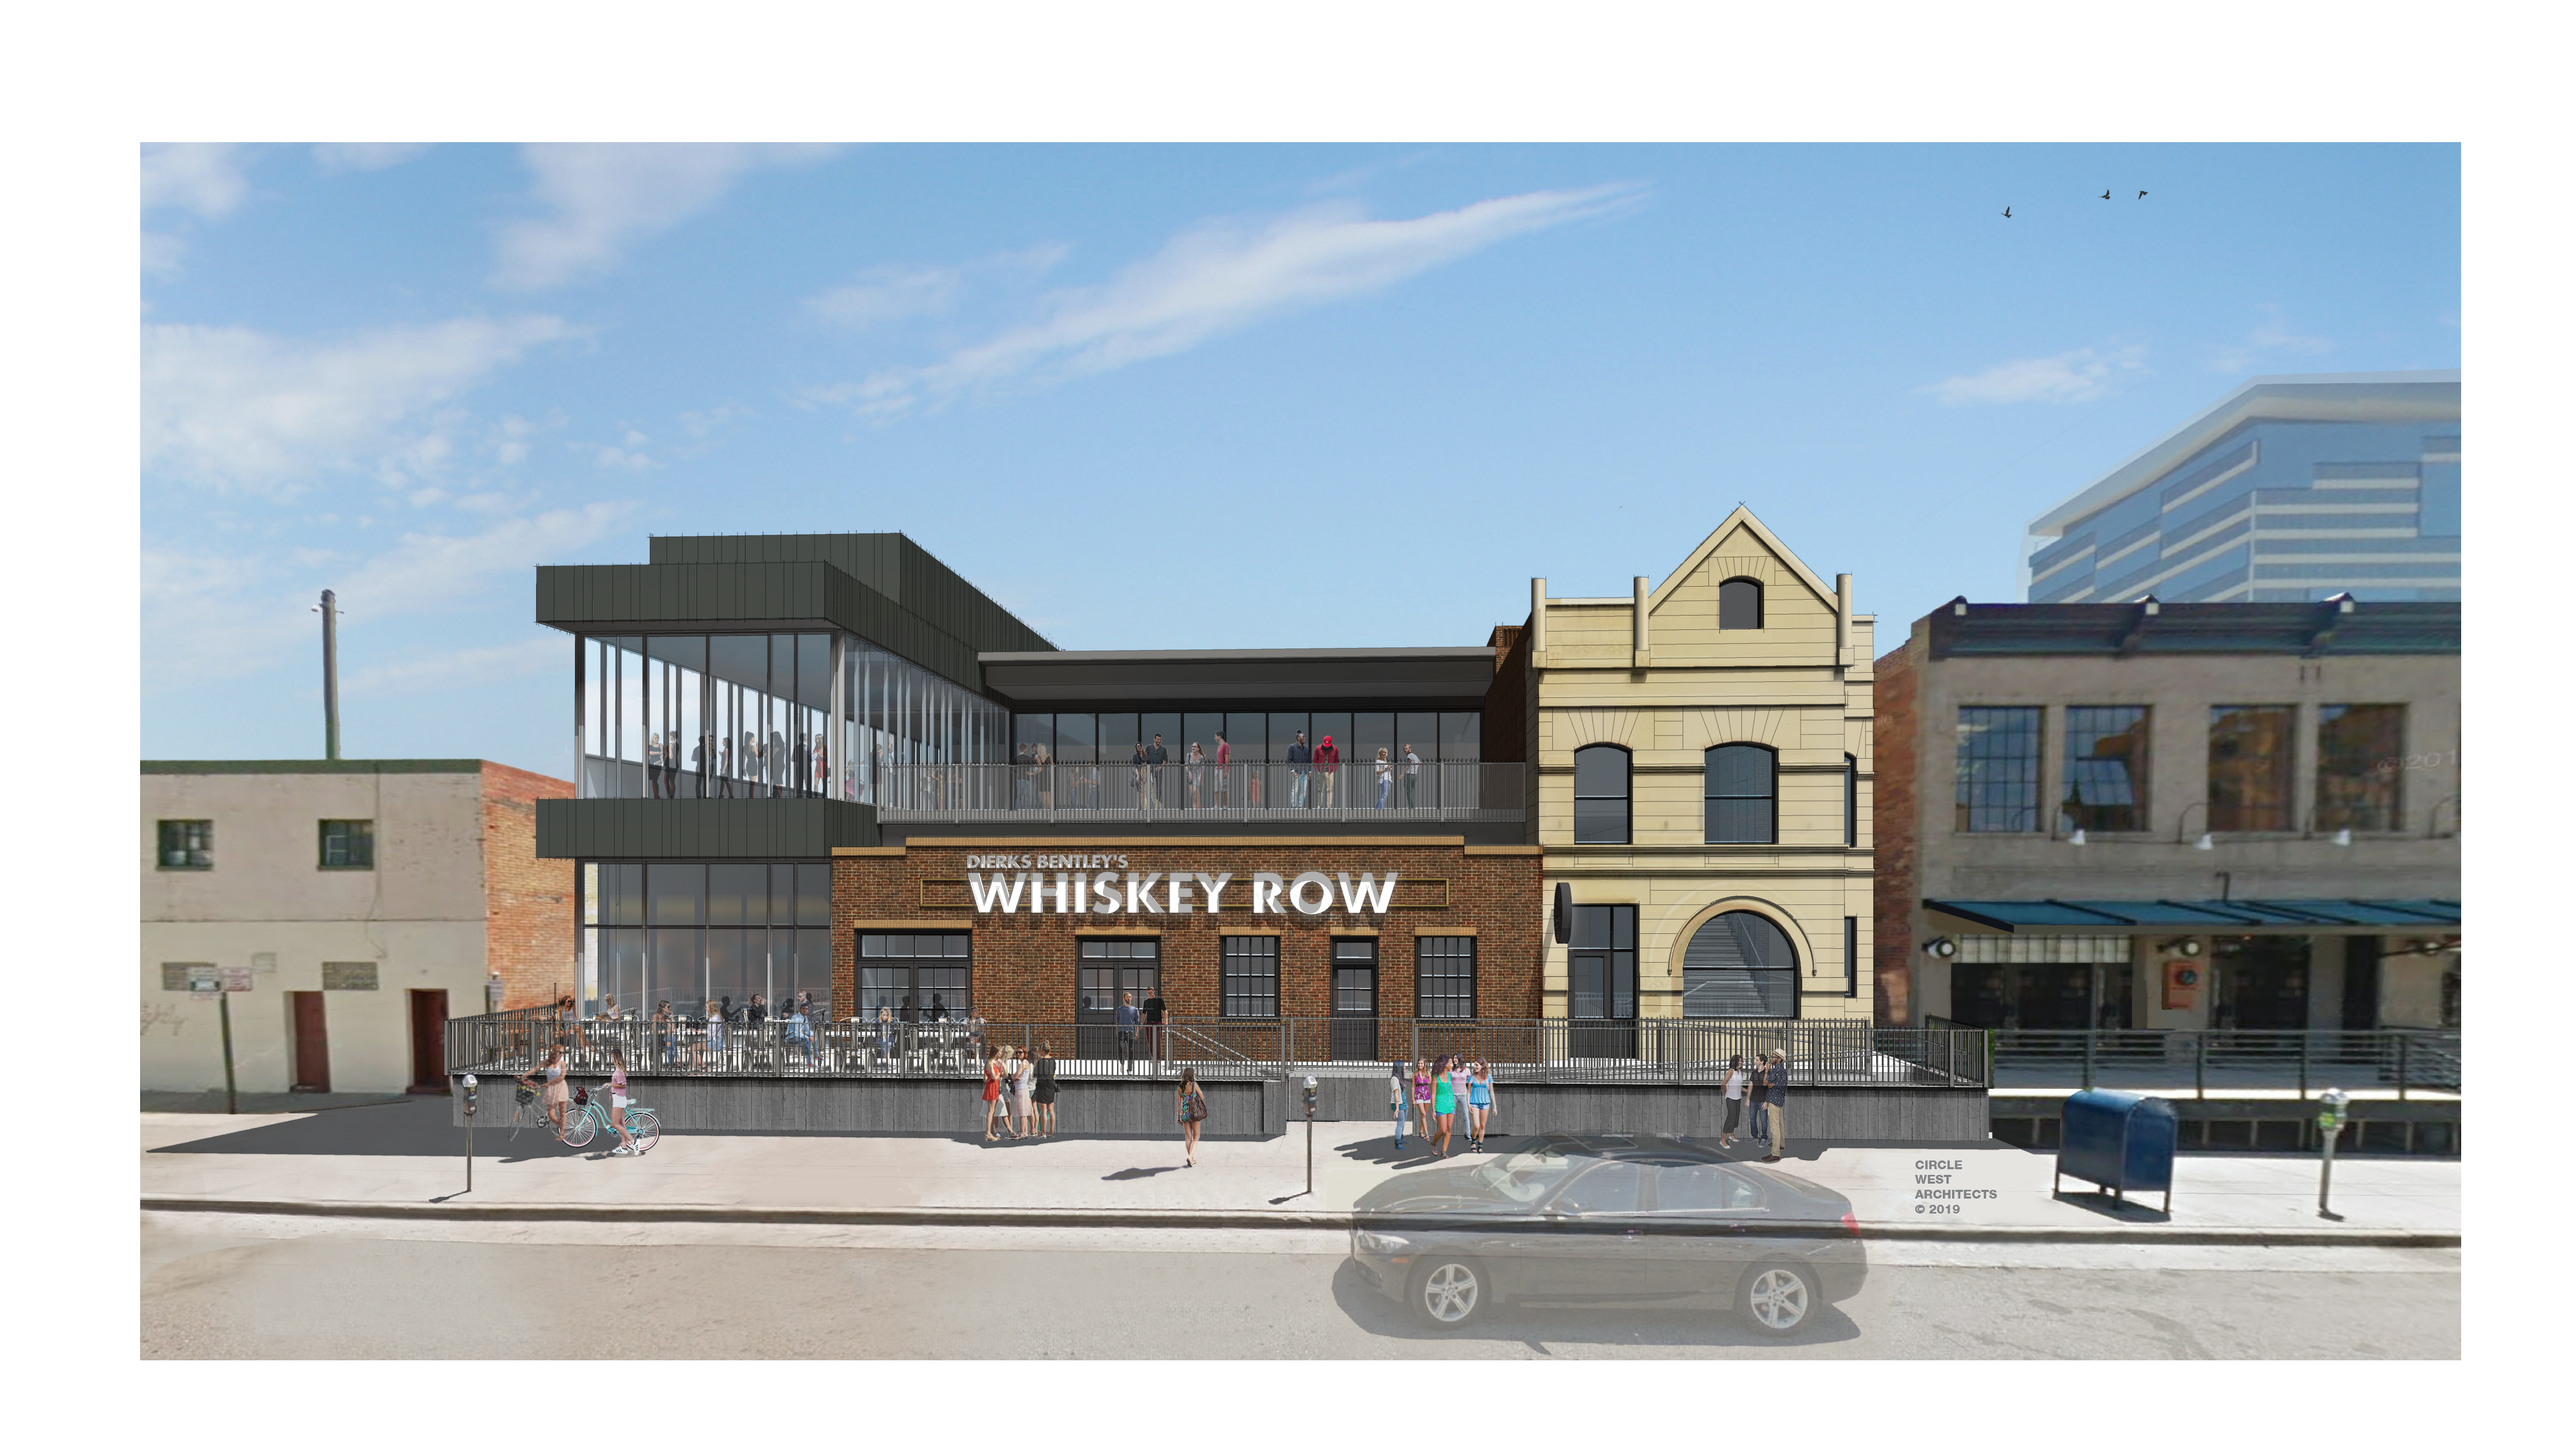 A rendering of the Dierks Bentley's Whiskey Row planned for Market Street showing the two-story bar and restaurant, which includes a glassed-in upper level with a patio